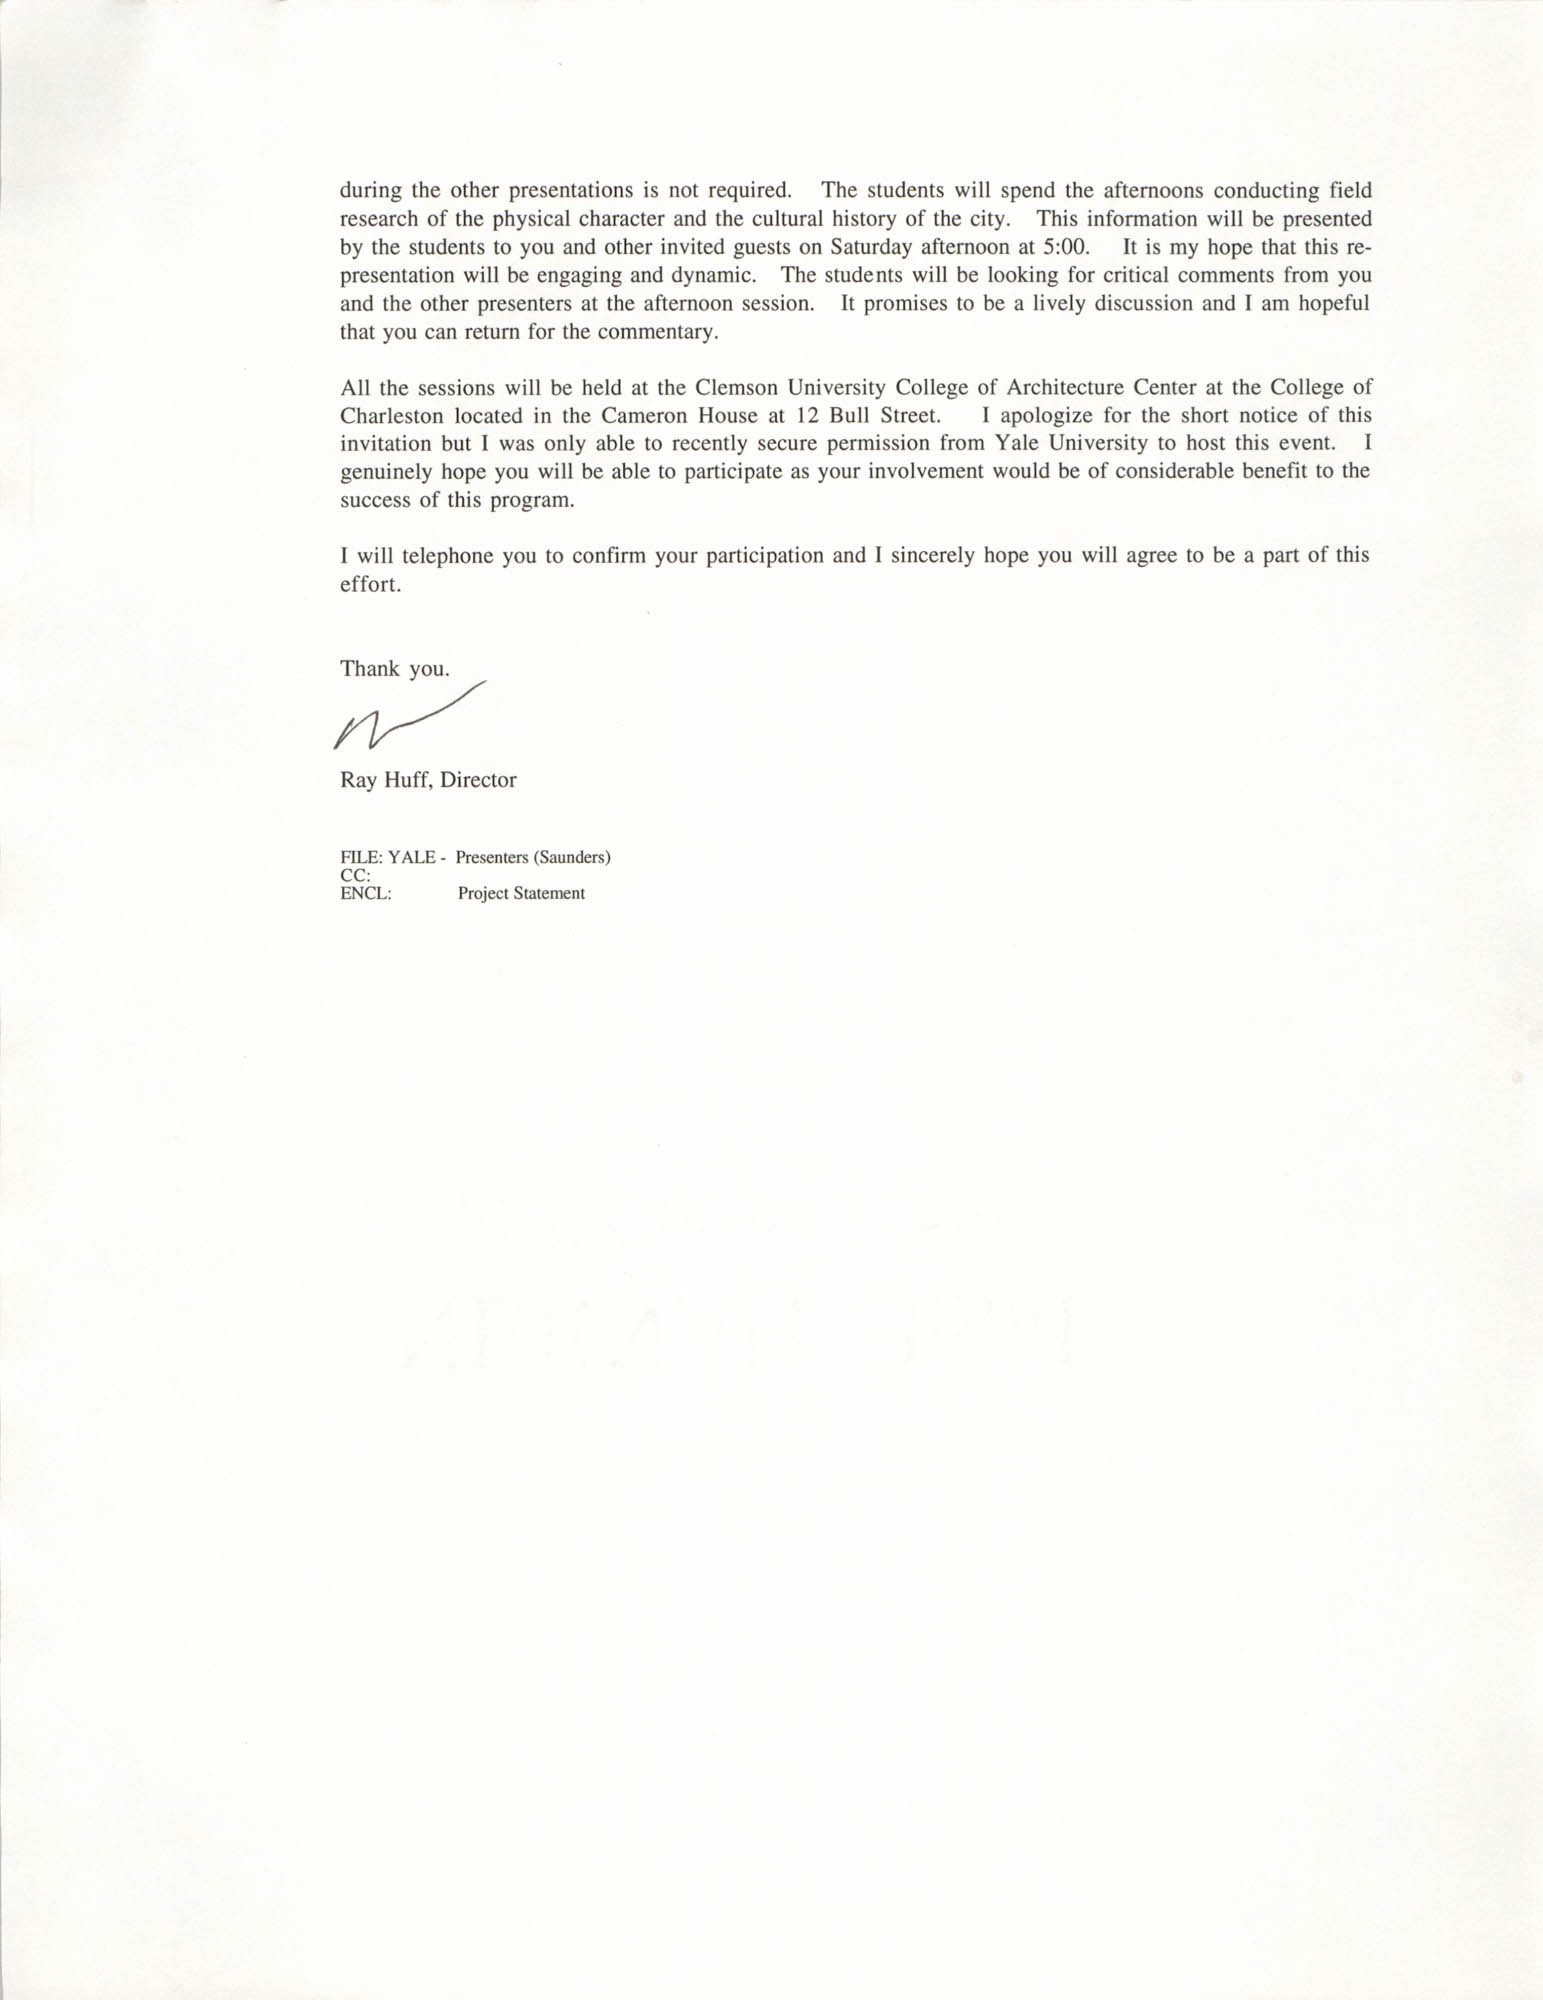 Letter from Ray Huff to William Saunders, September 14, 1994, Page 2